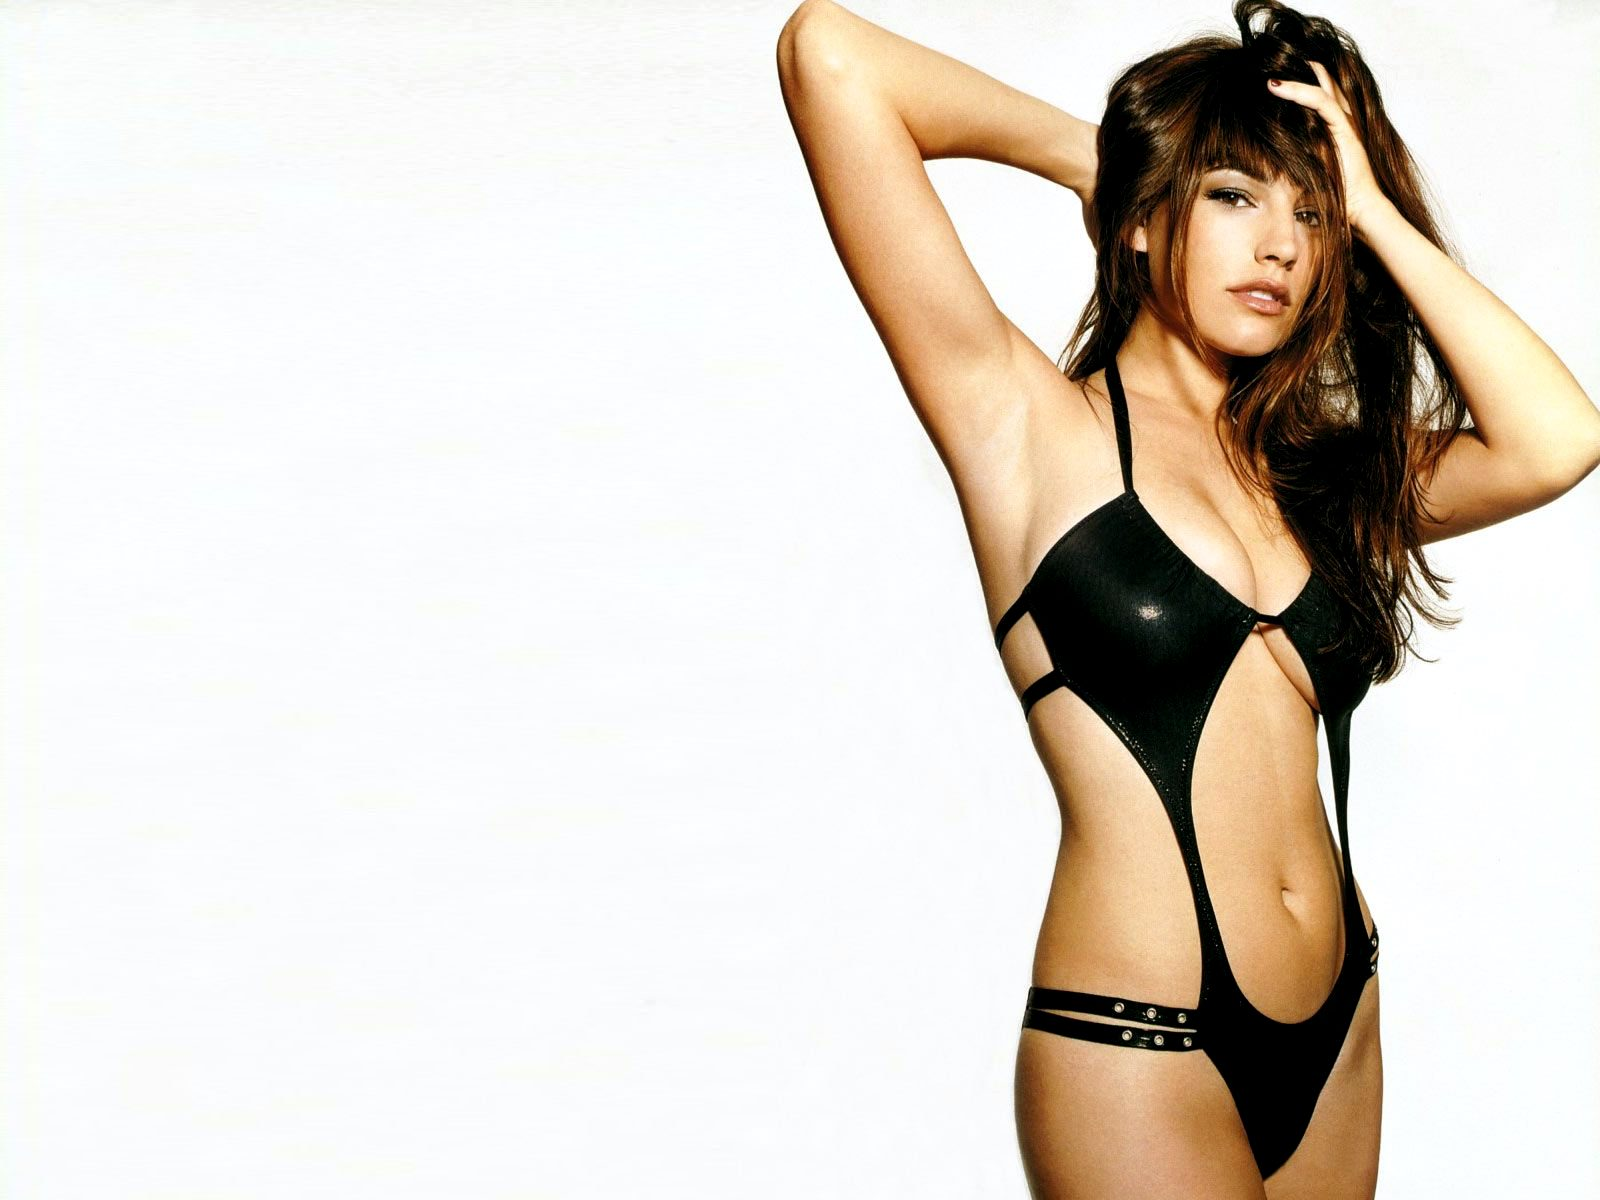 1600x1200 - Kelly Brook Wallpapers 17